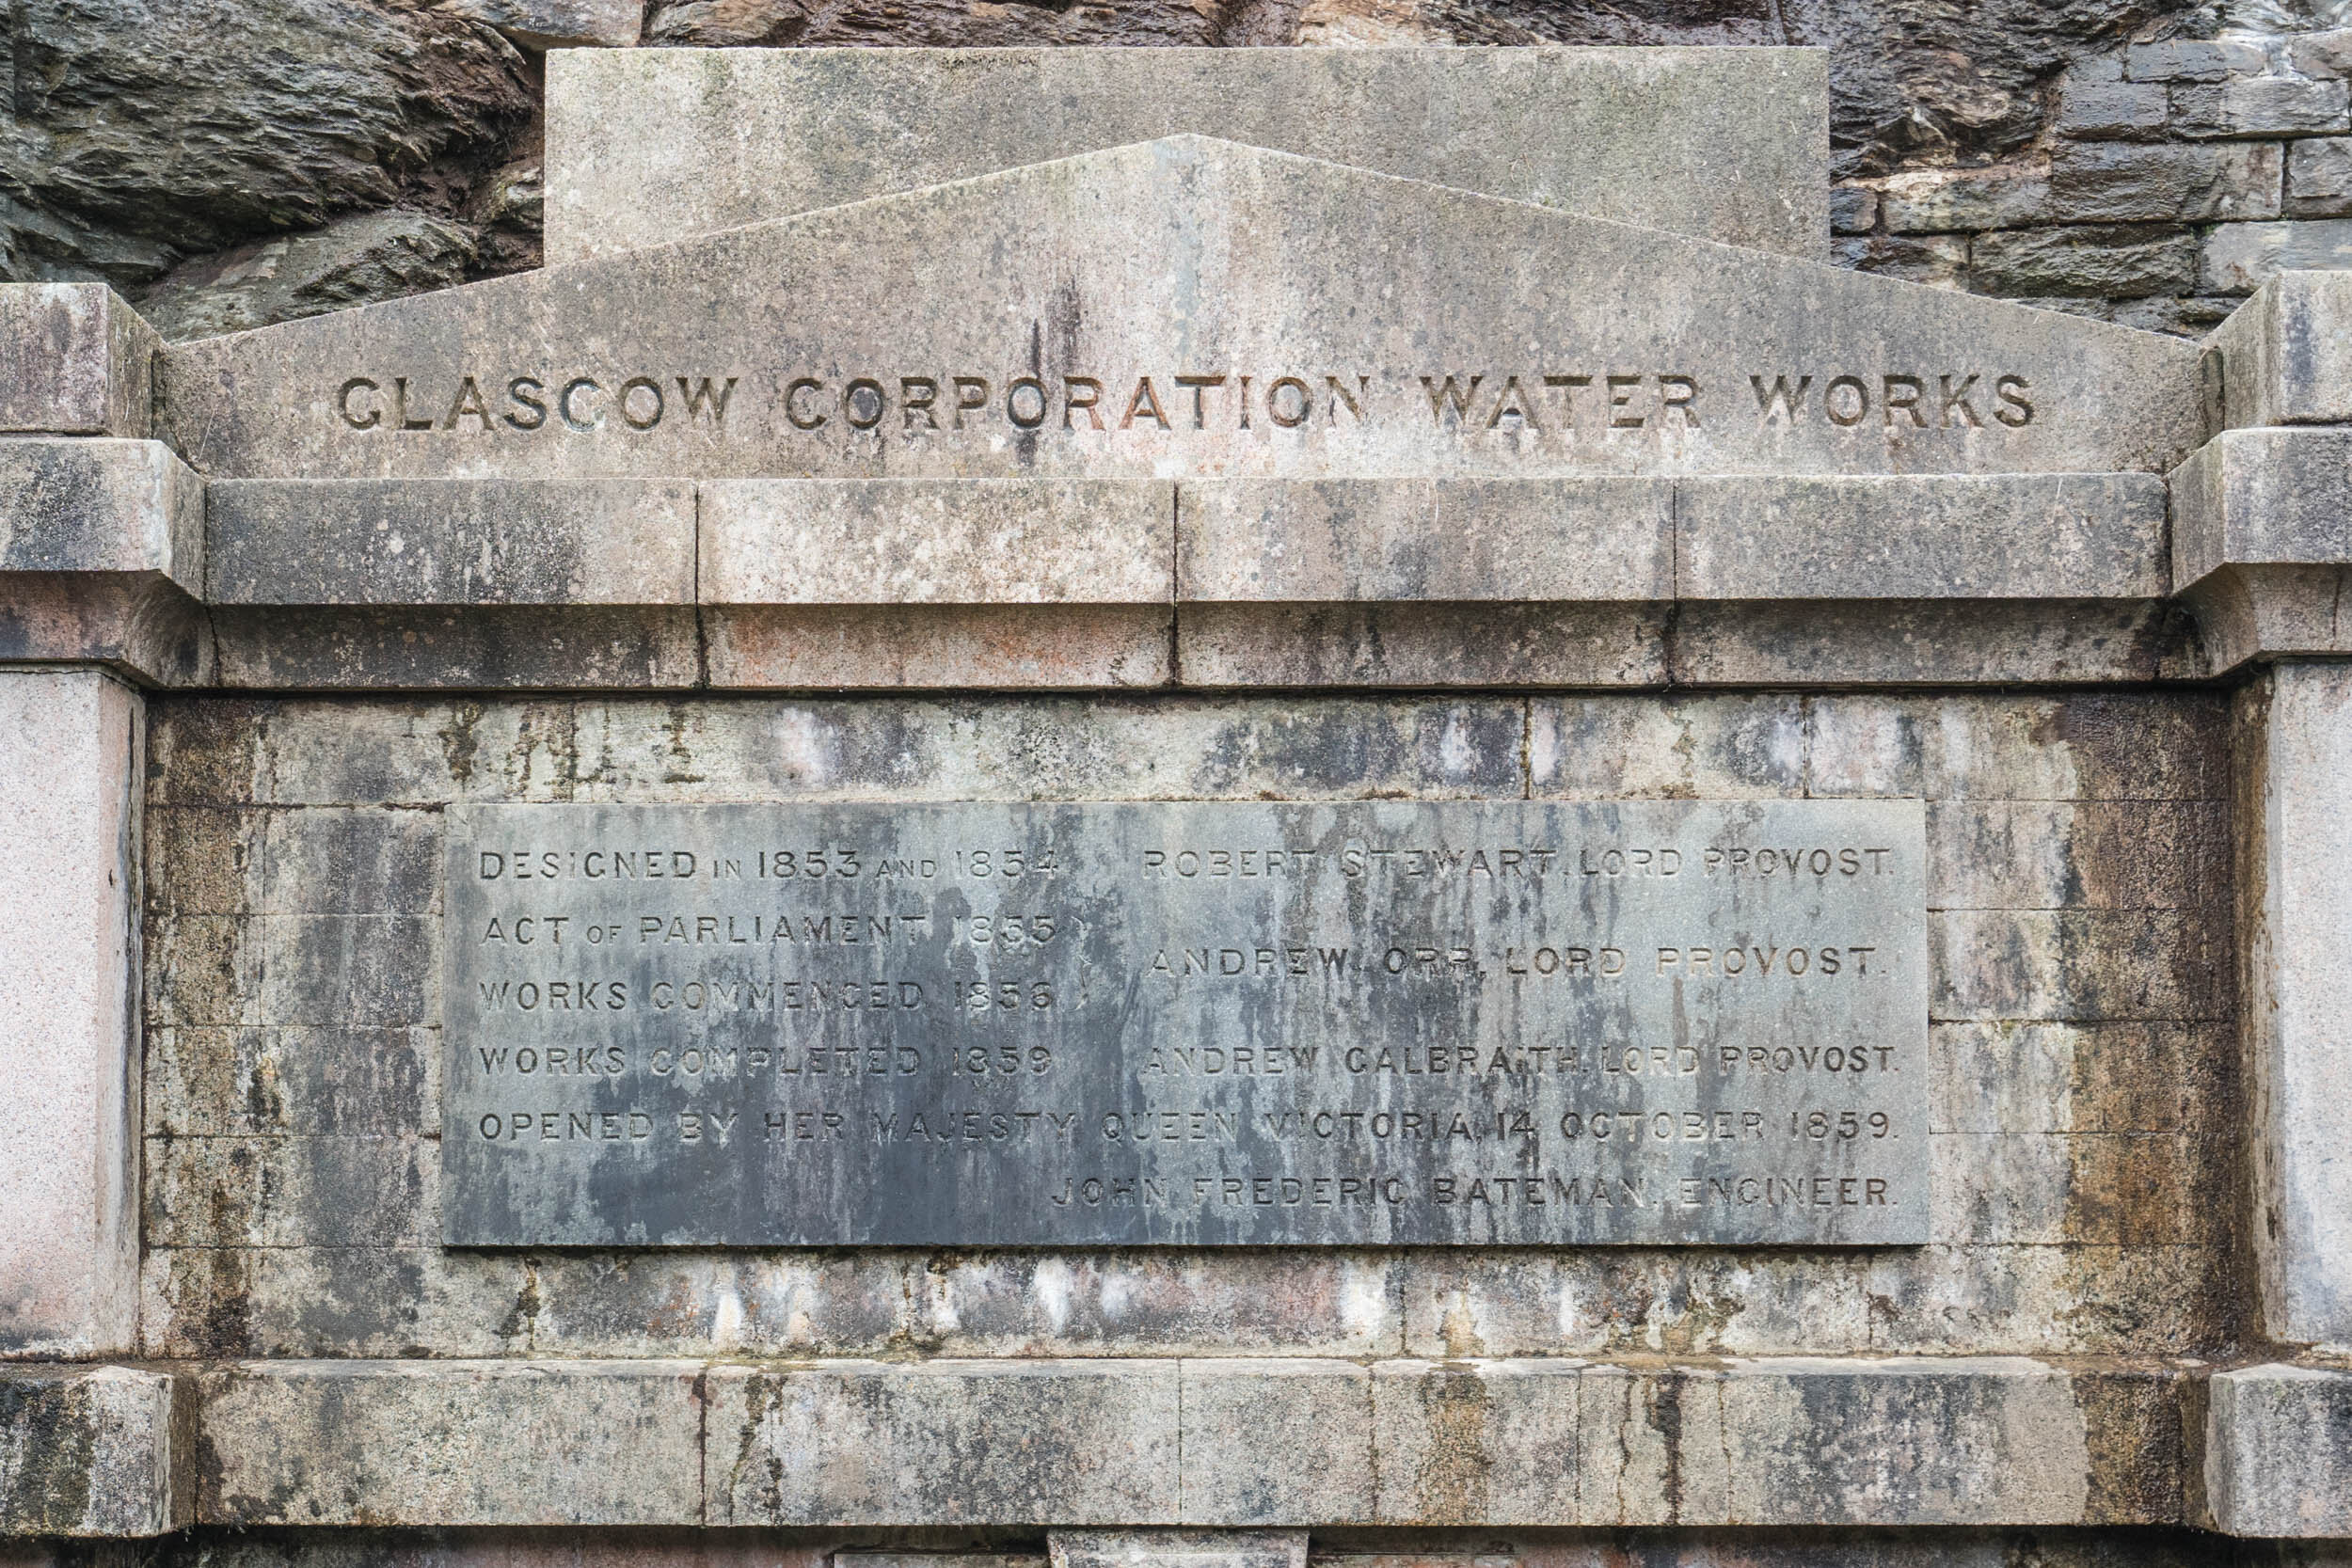 Commemoration Stone, unveiled by Queen Victoria 1860.